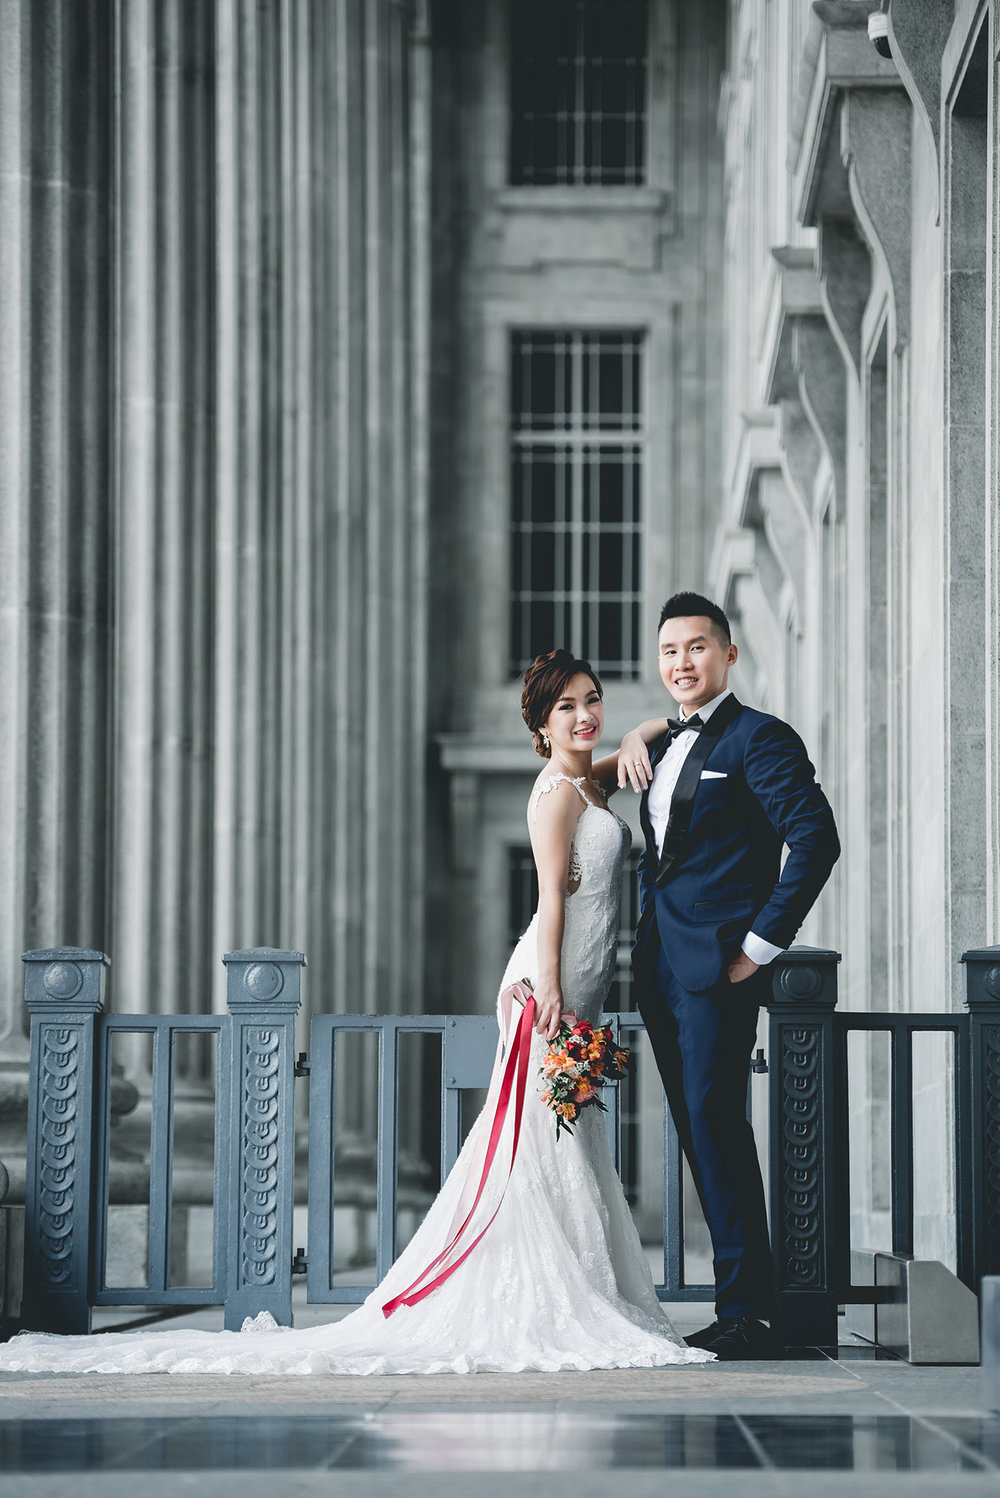 Singapore Prewedding 37.JPG